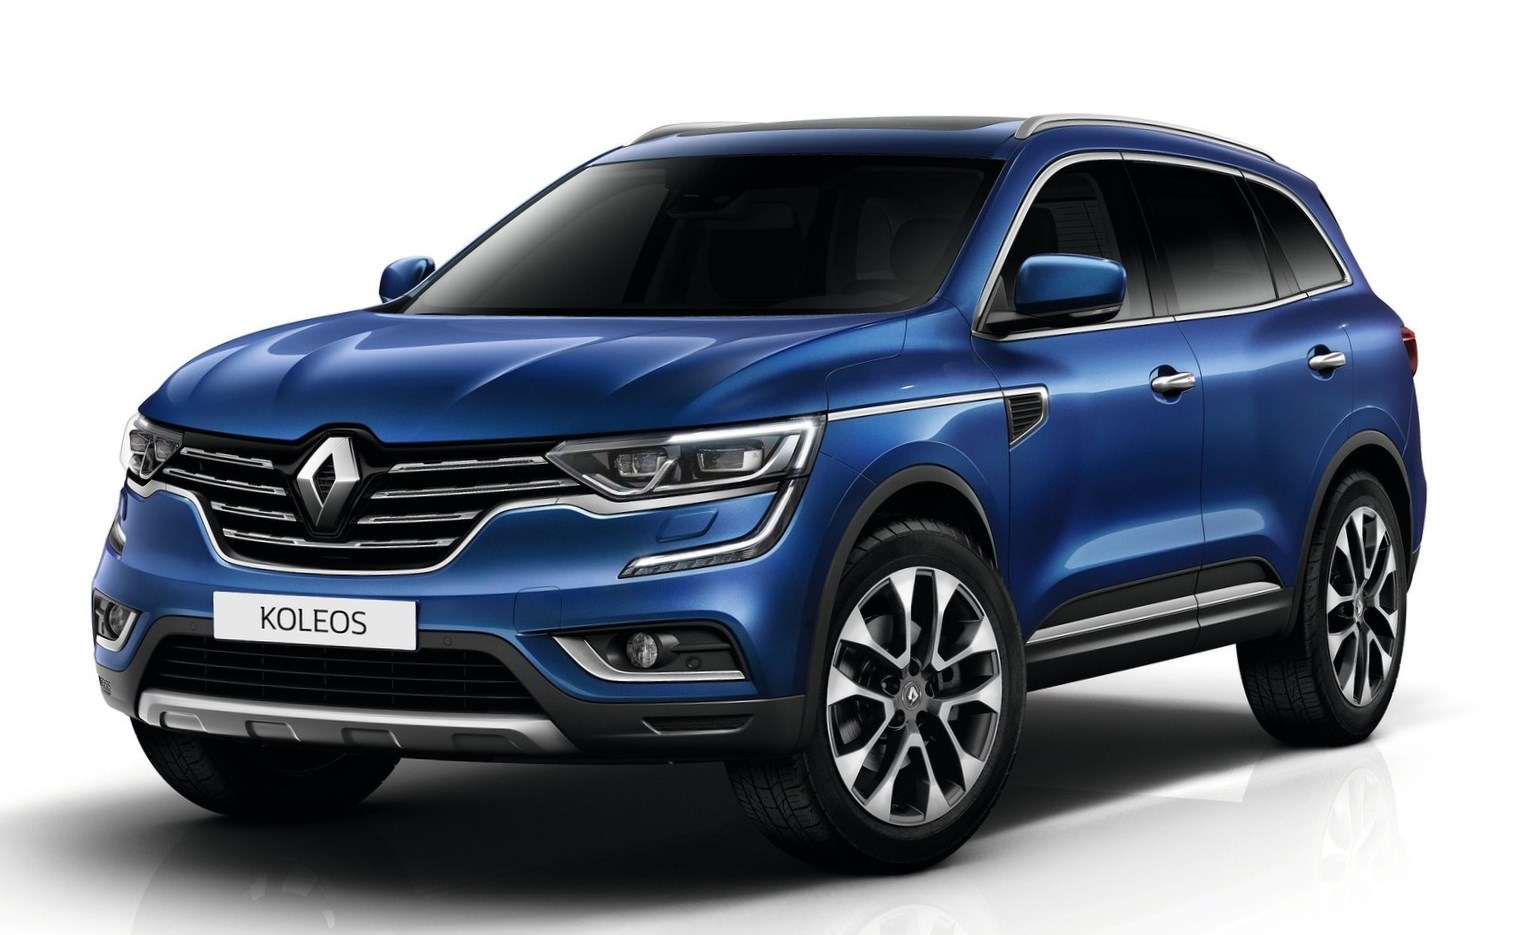 renault koleos 2017 atelier - photo #22